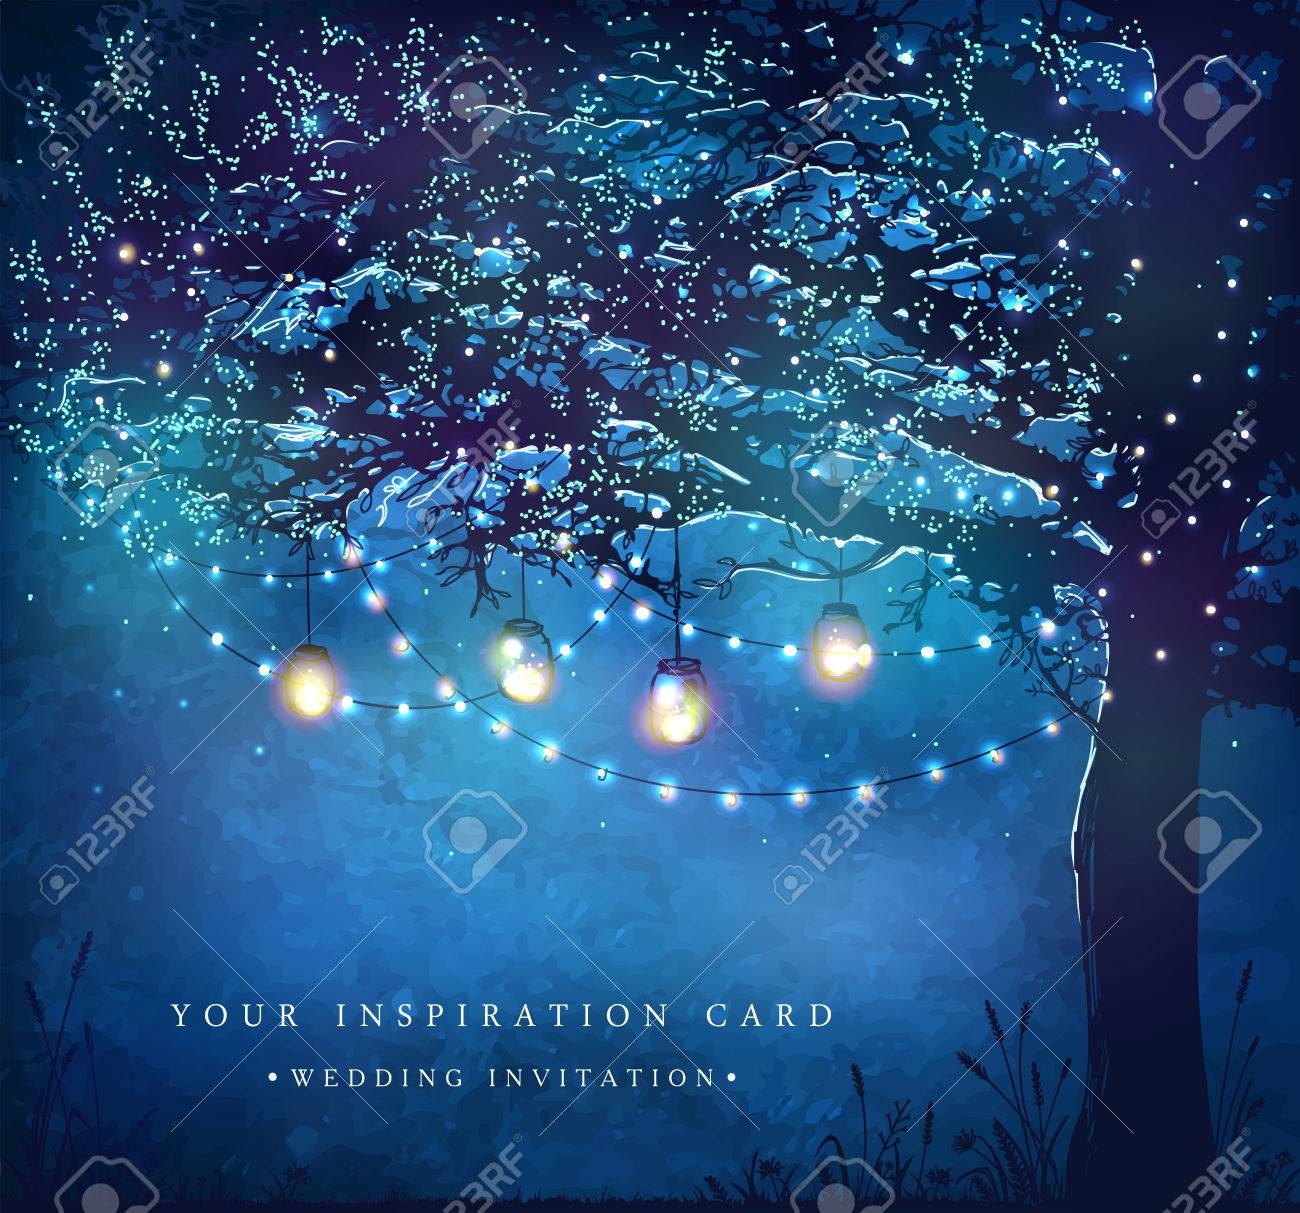 Hanging decorative holiday lights for a party. Garden party invitation. Inspiration card for wedding, date, birthday, tea party - 56483739